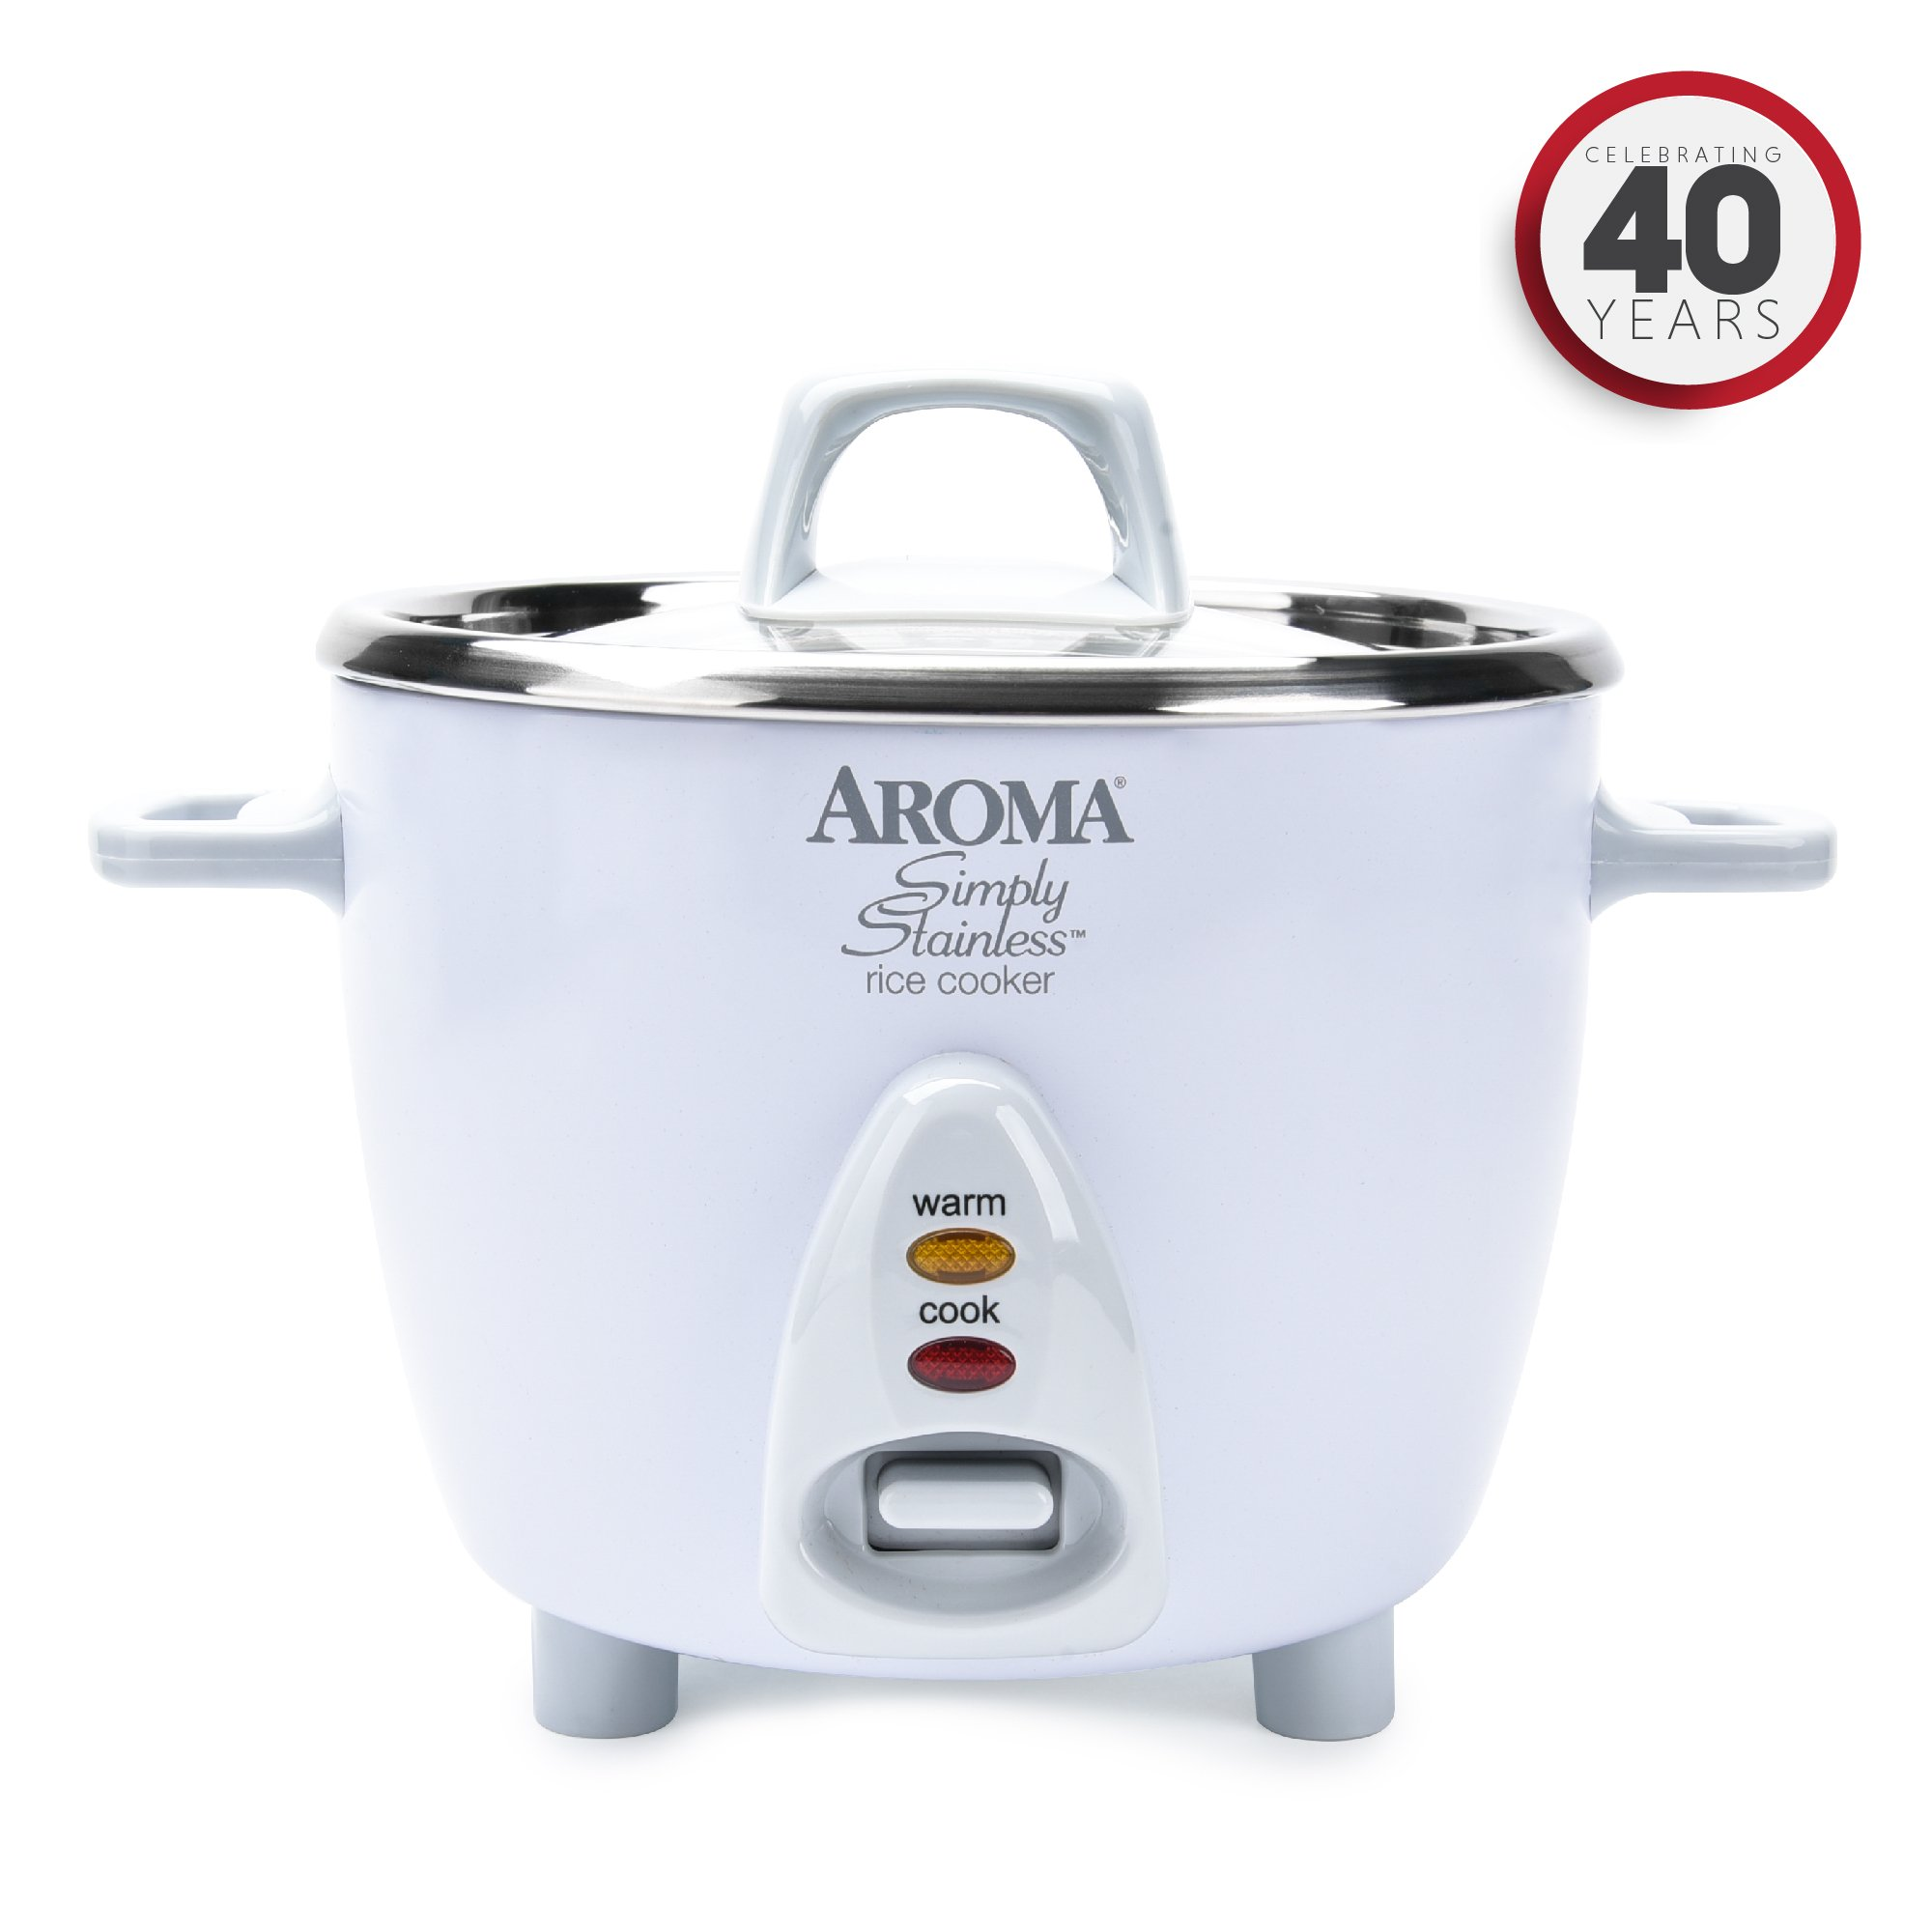 Aroma Simply Stainless Uncooked Cooked